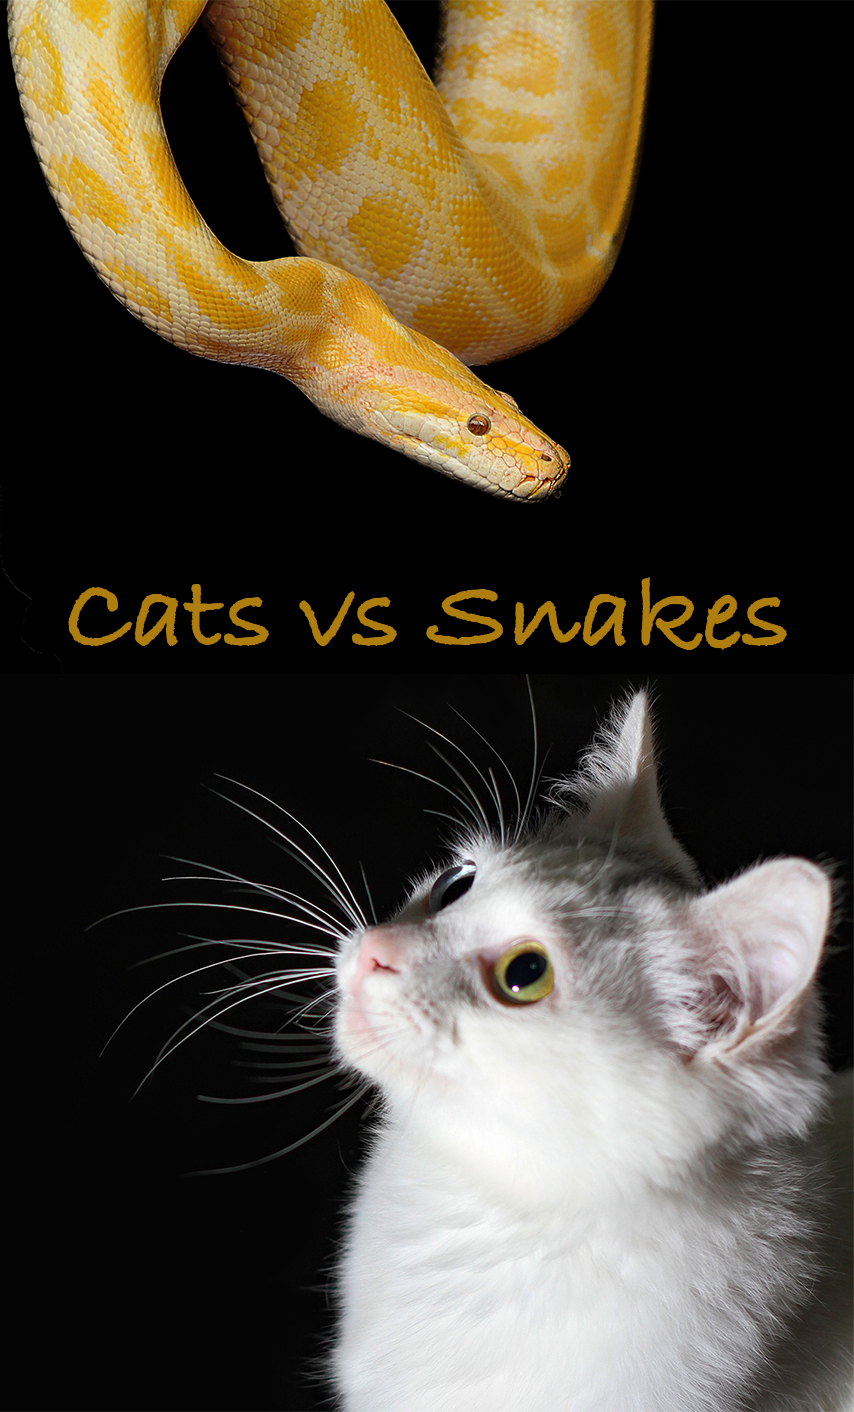 Cats and Snakes - Are snakes afraid of cats? Are cats afraid of snakes? What should you do if you suspect your cat has been bitten by a snake? Let's find out!